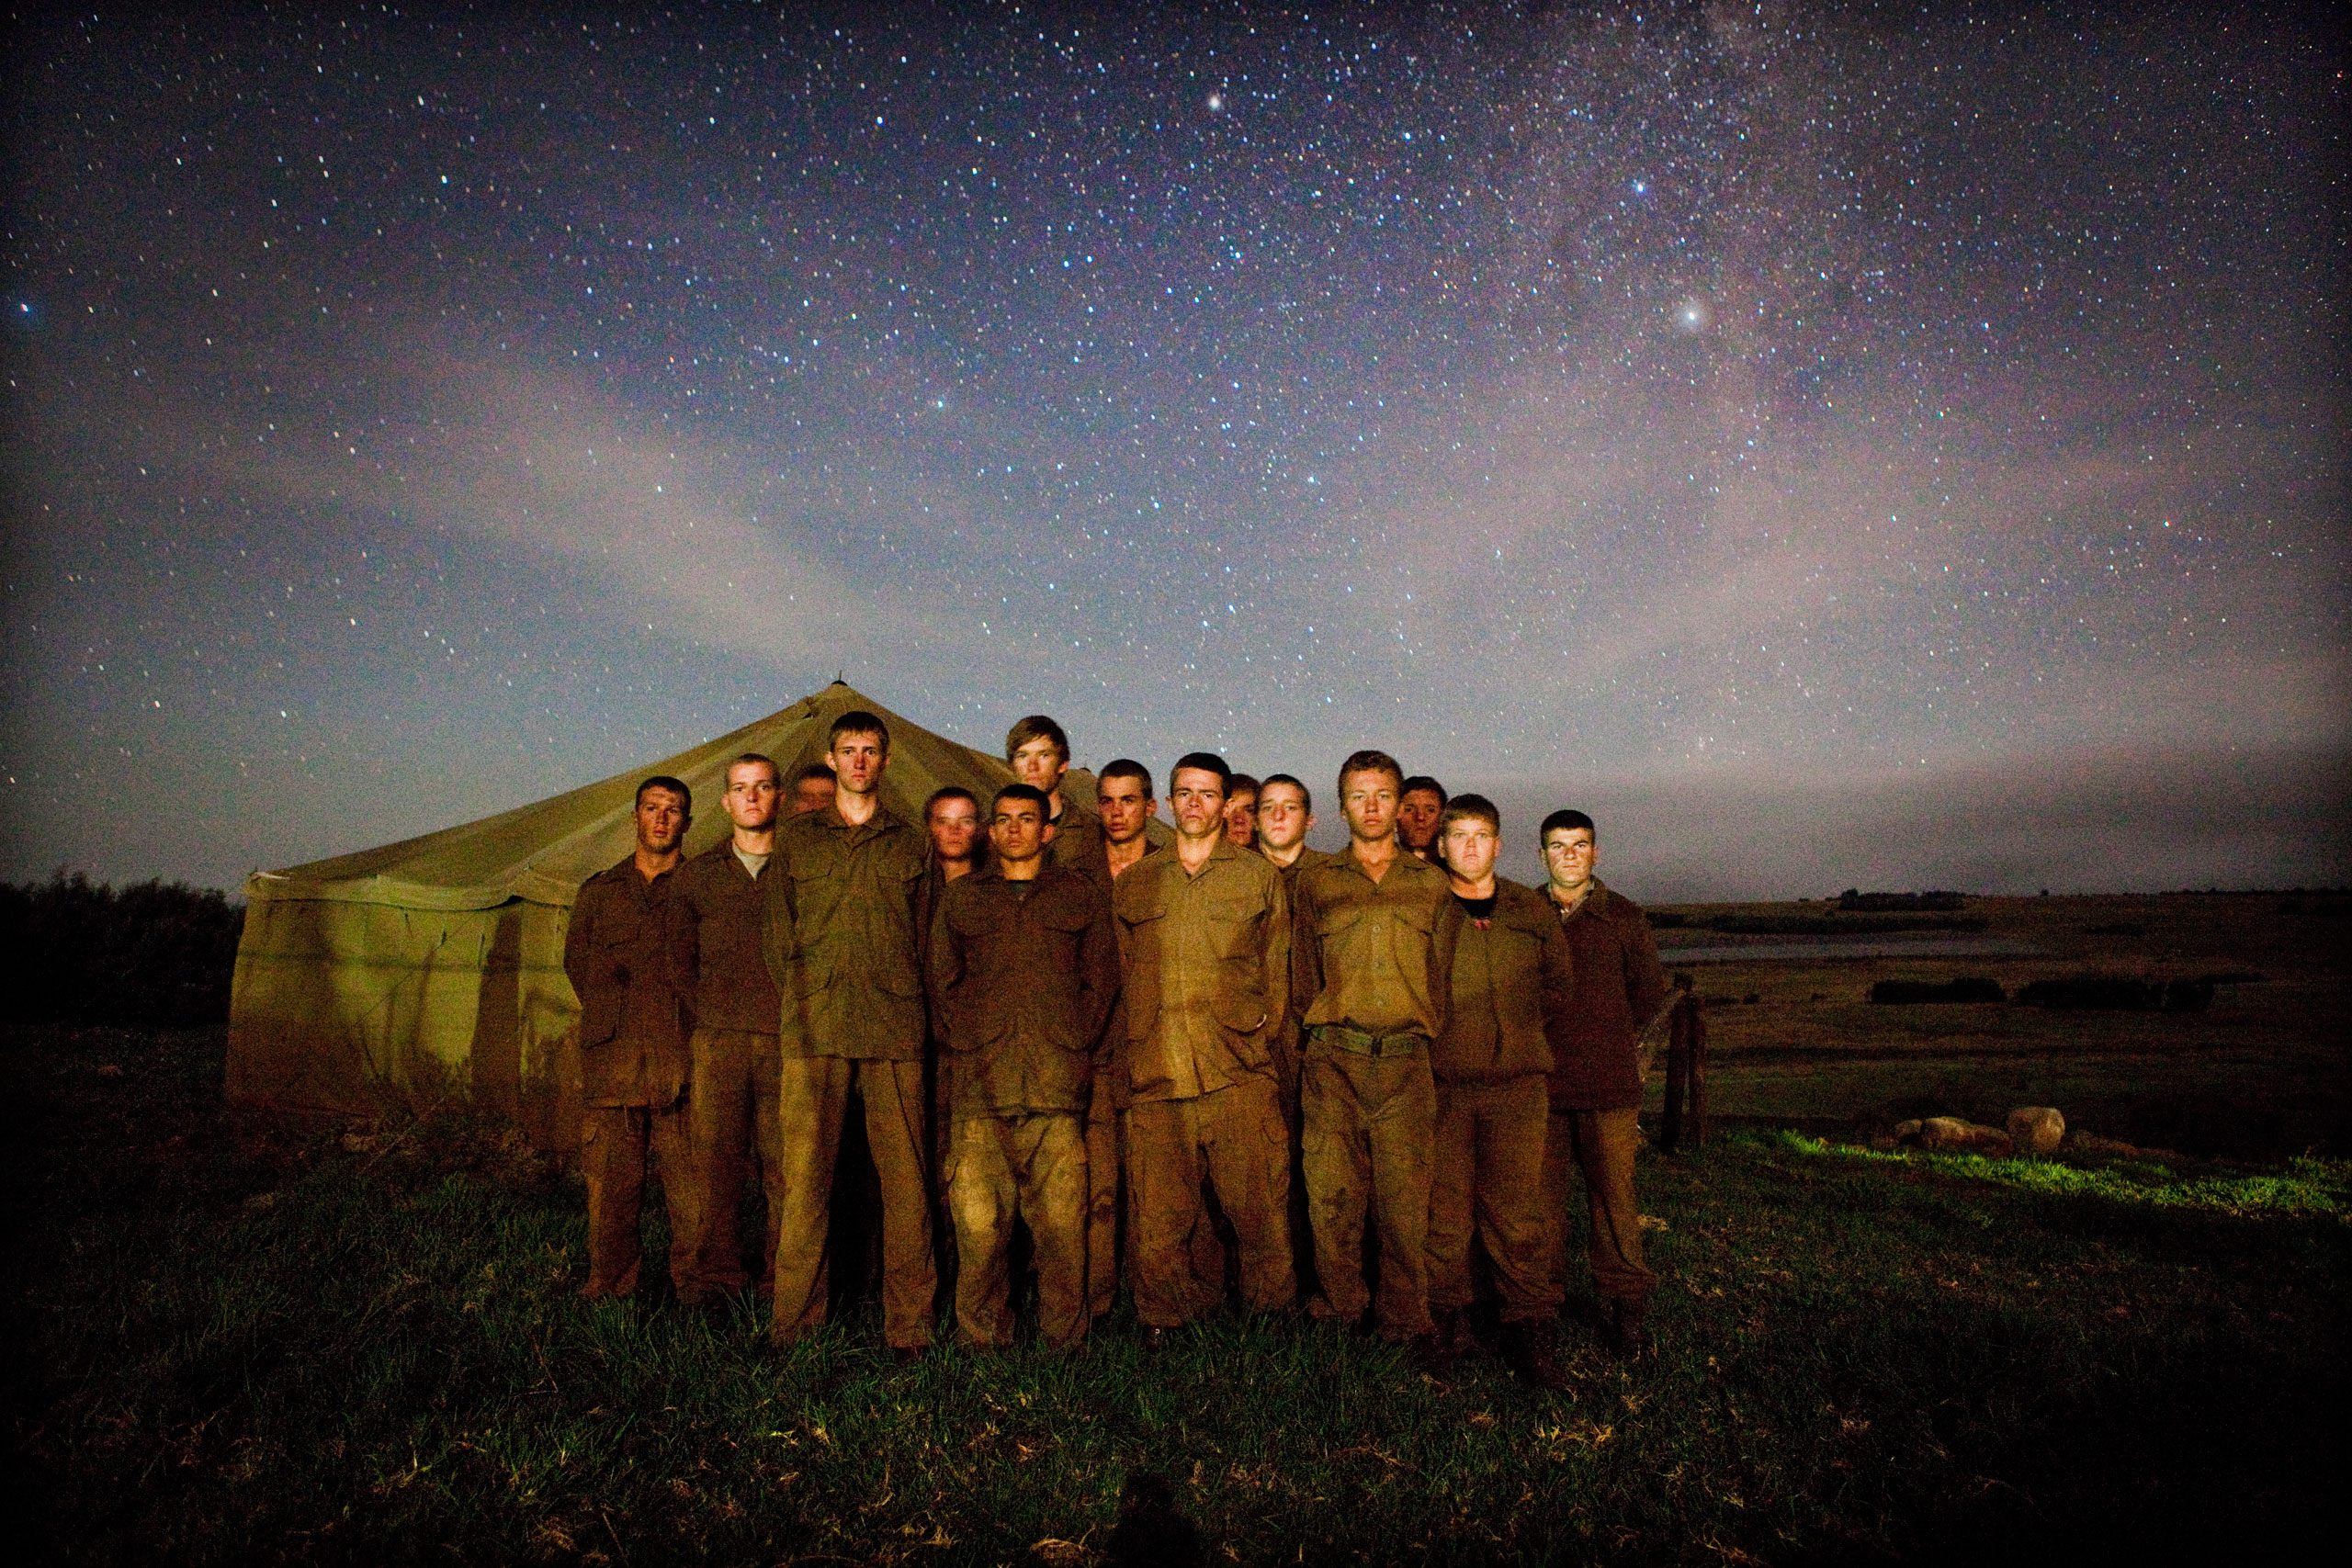 Boys pose in army style under the stars on the last evening of their nine day camp.